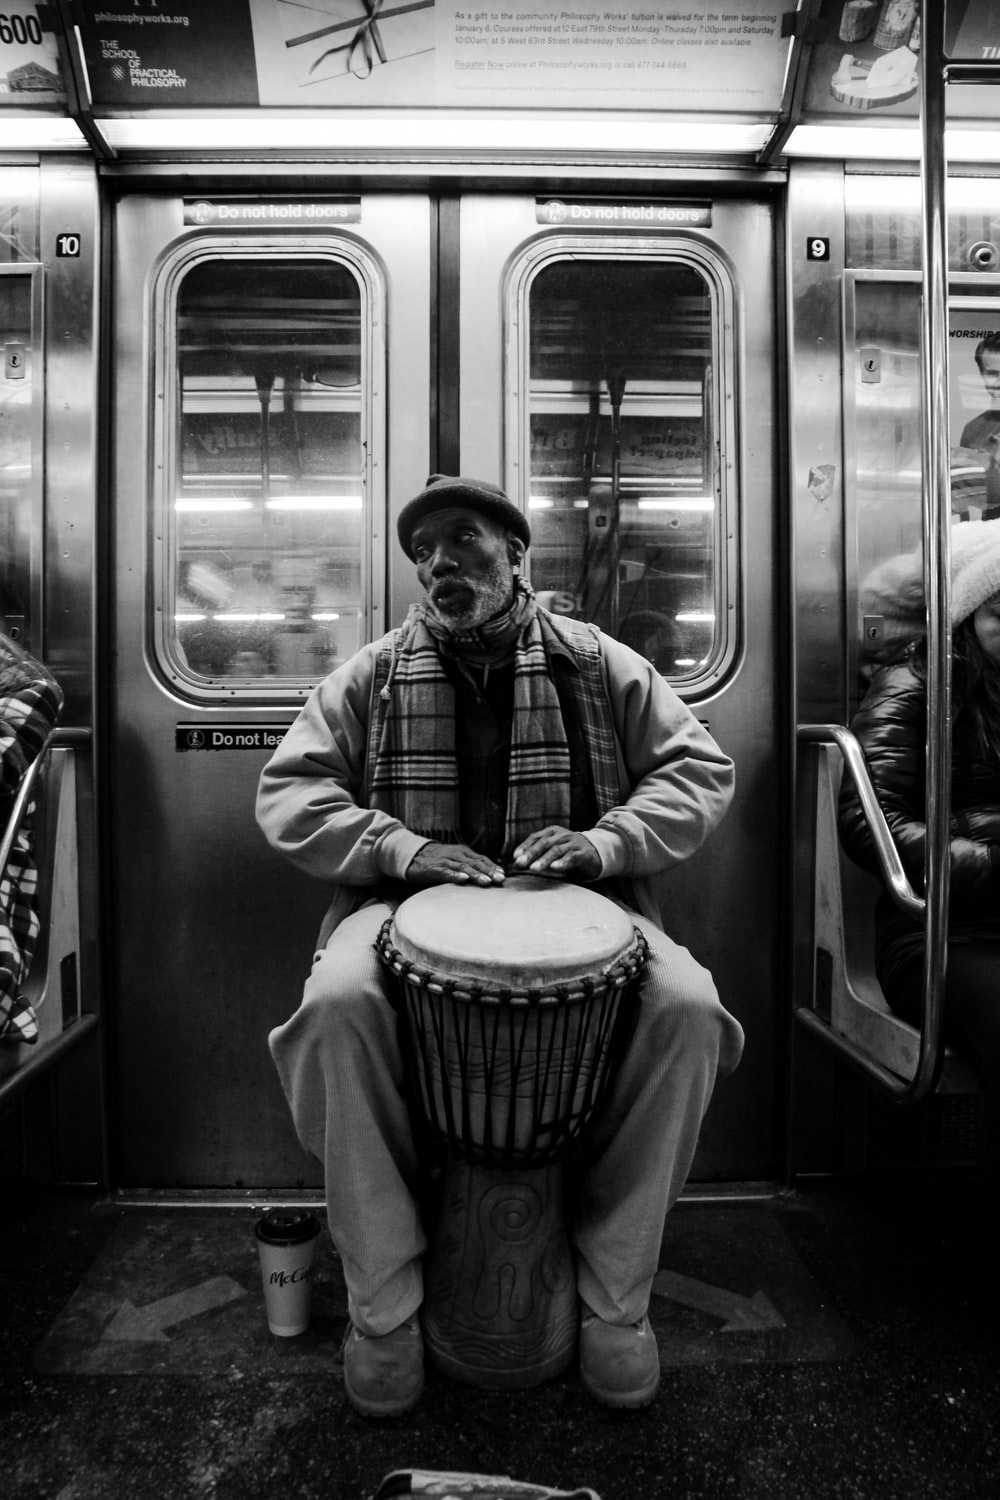 man playing djembe inside the train